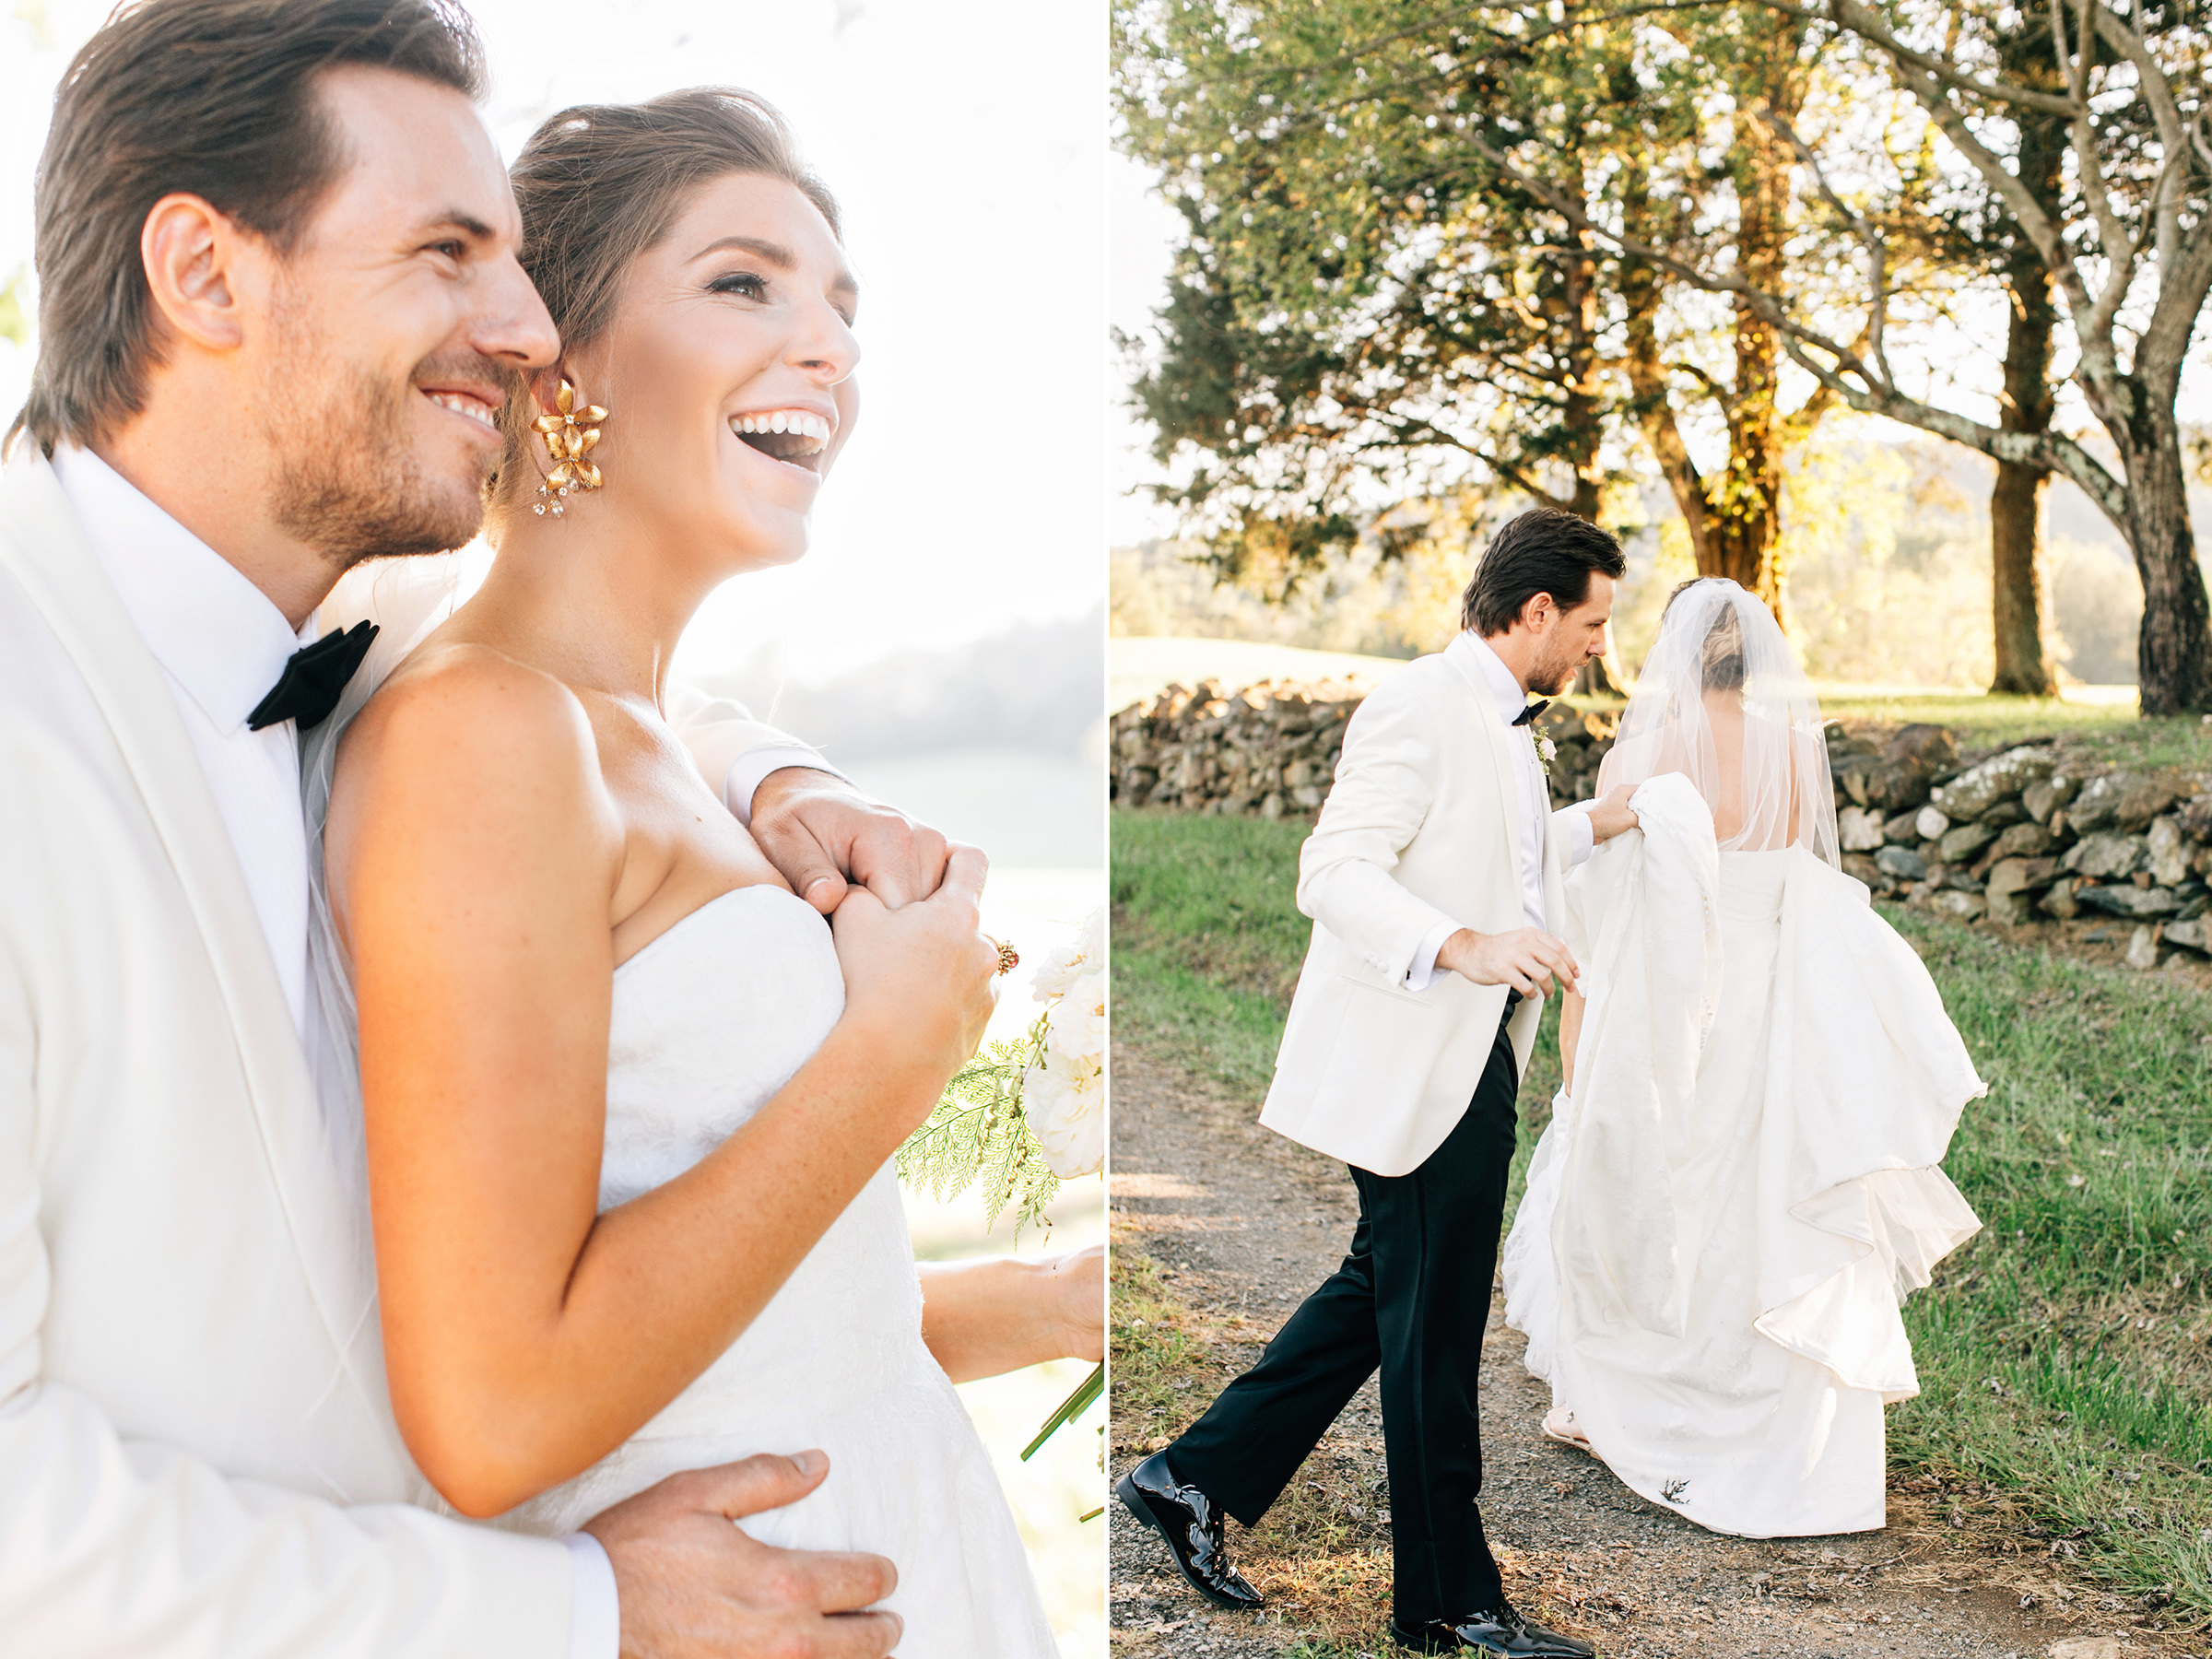 KatieStoopsPhotography-charlottesville wedding-farm wedding29.jpg